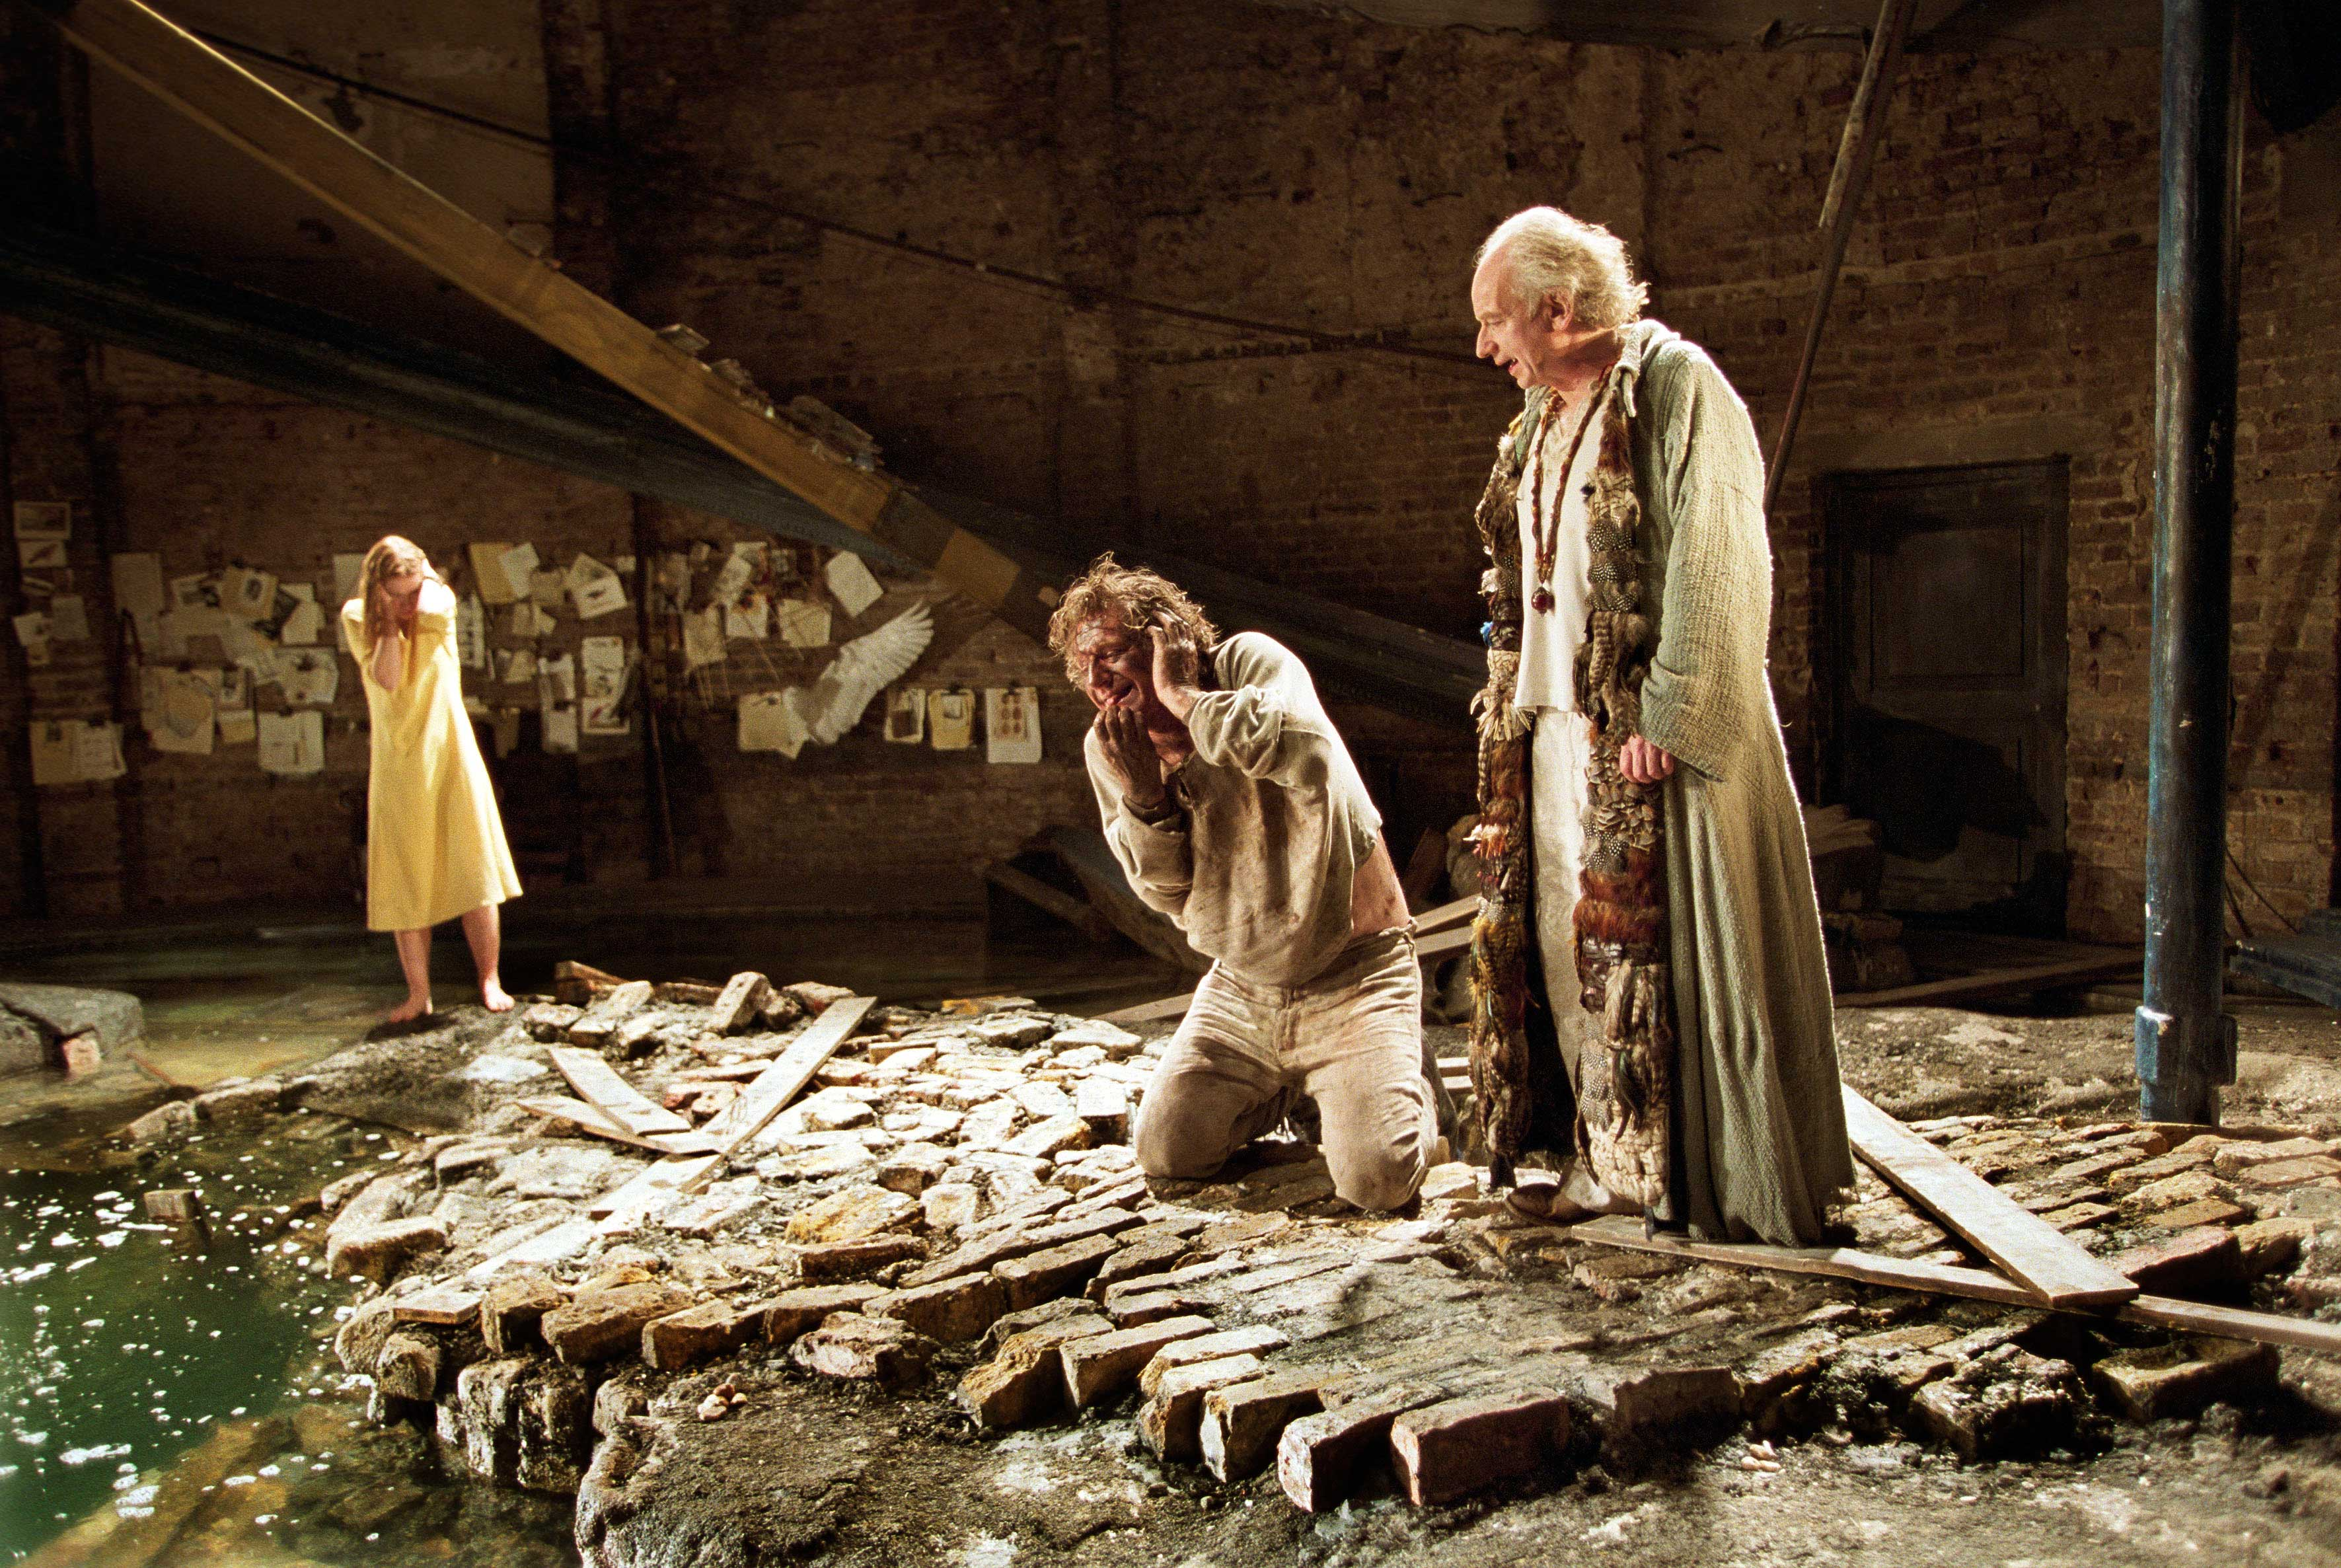 Photograph of Jonathan Kent's production of The Tempest, 2000